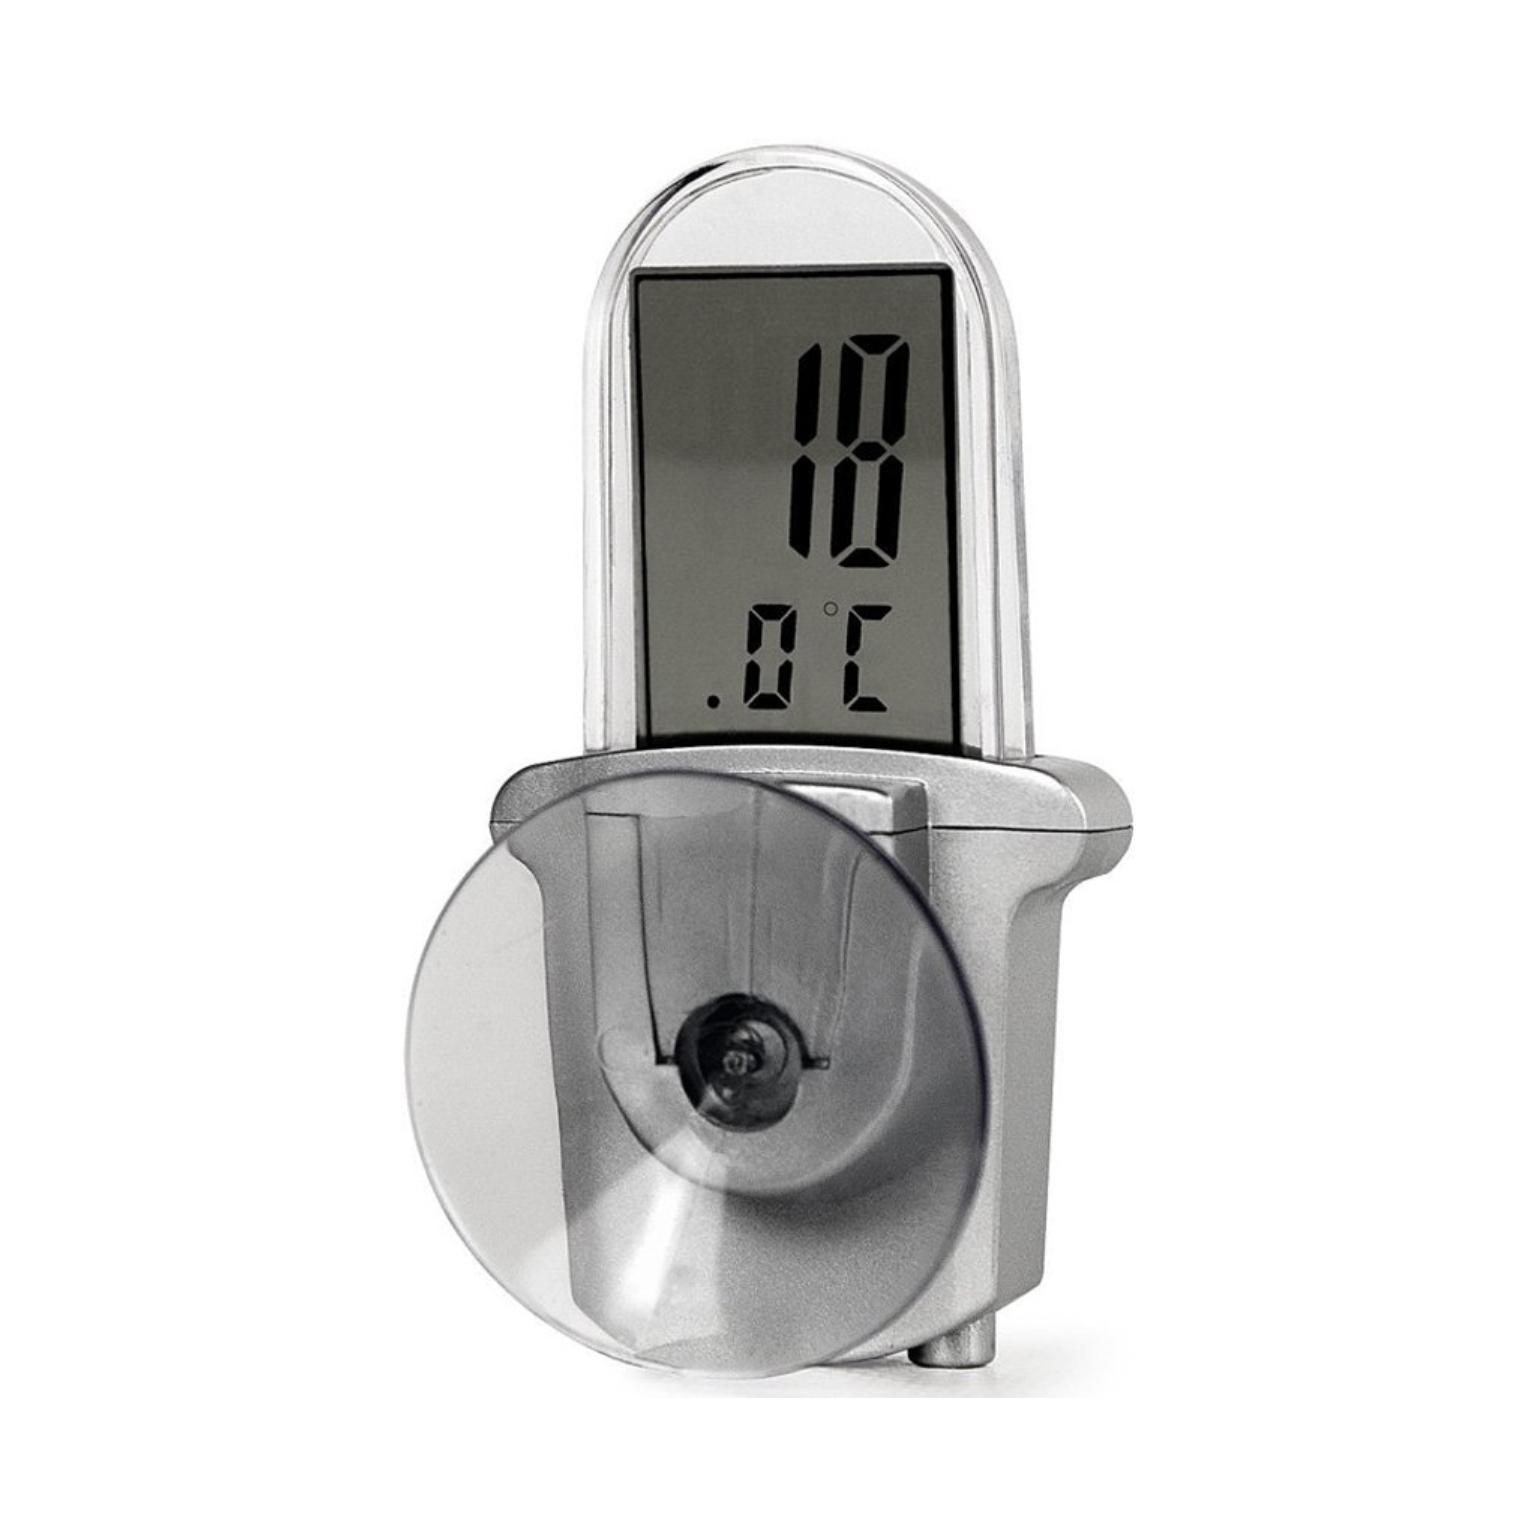 Thermometer outdoor PL GRUNDIG